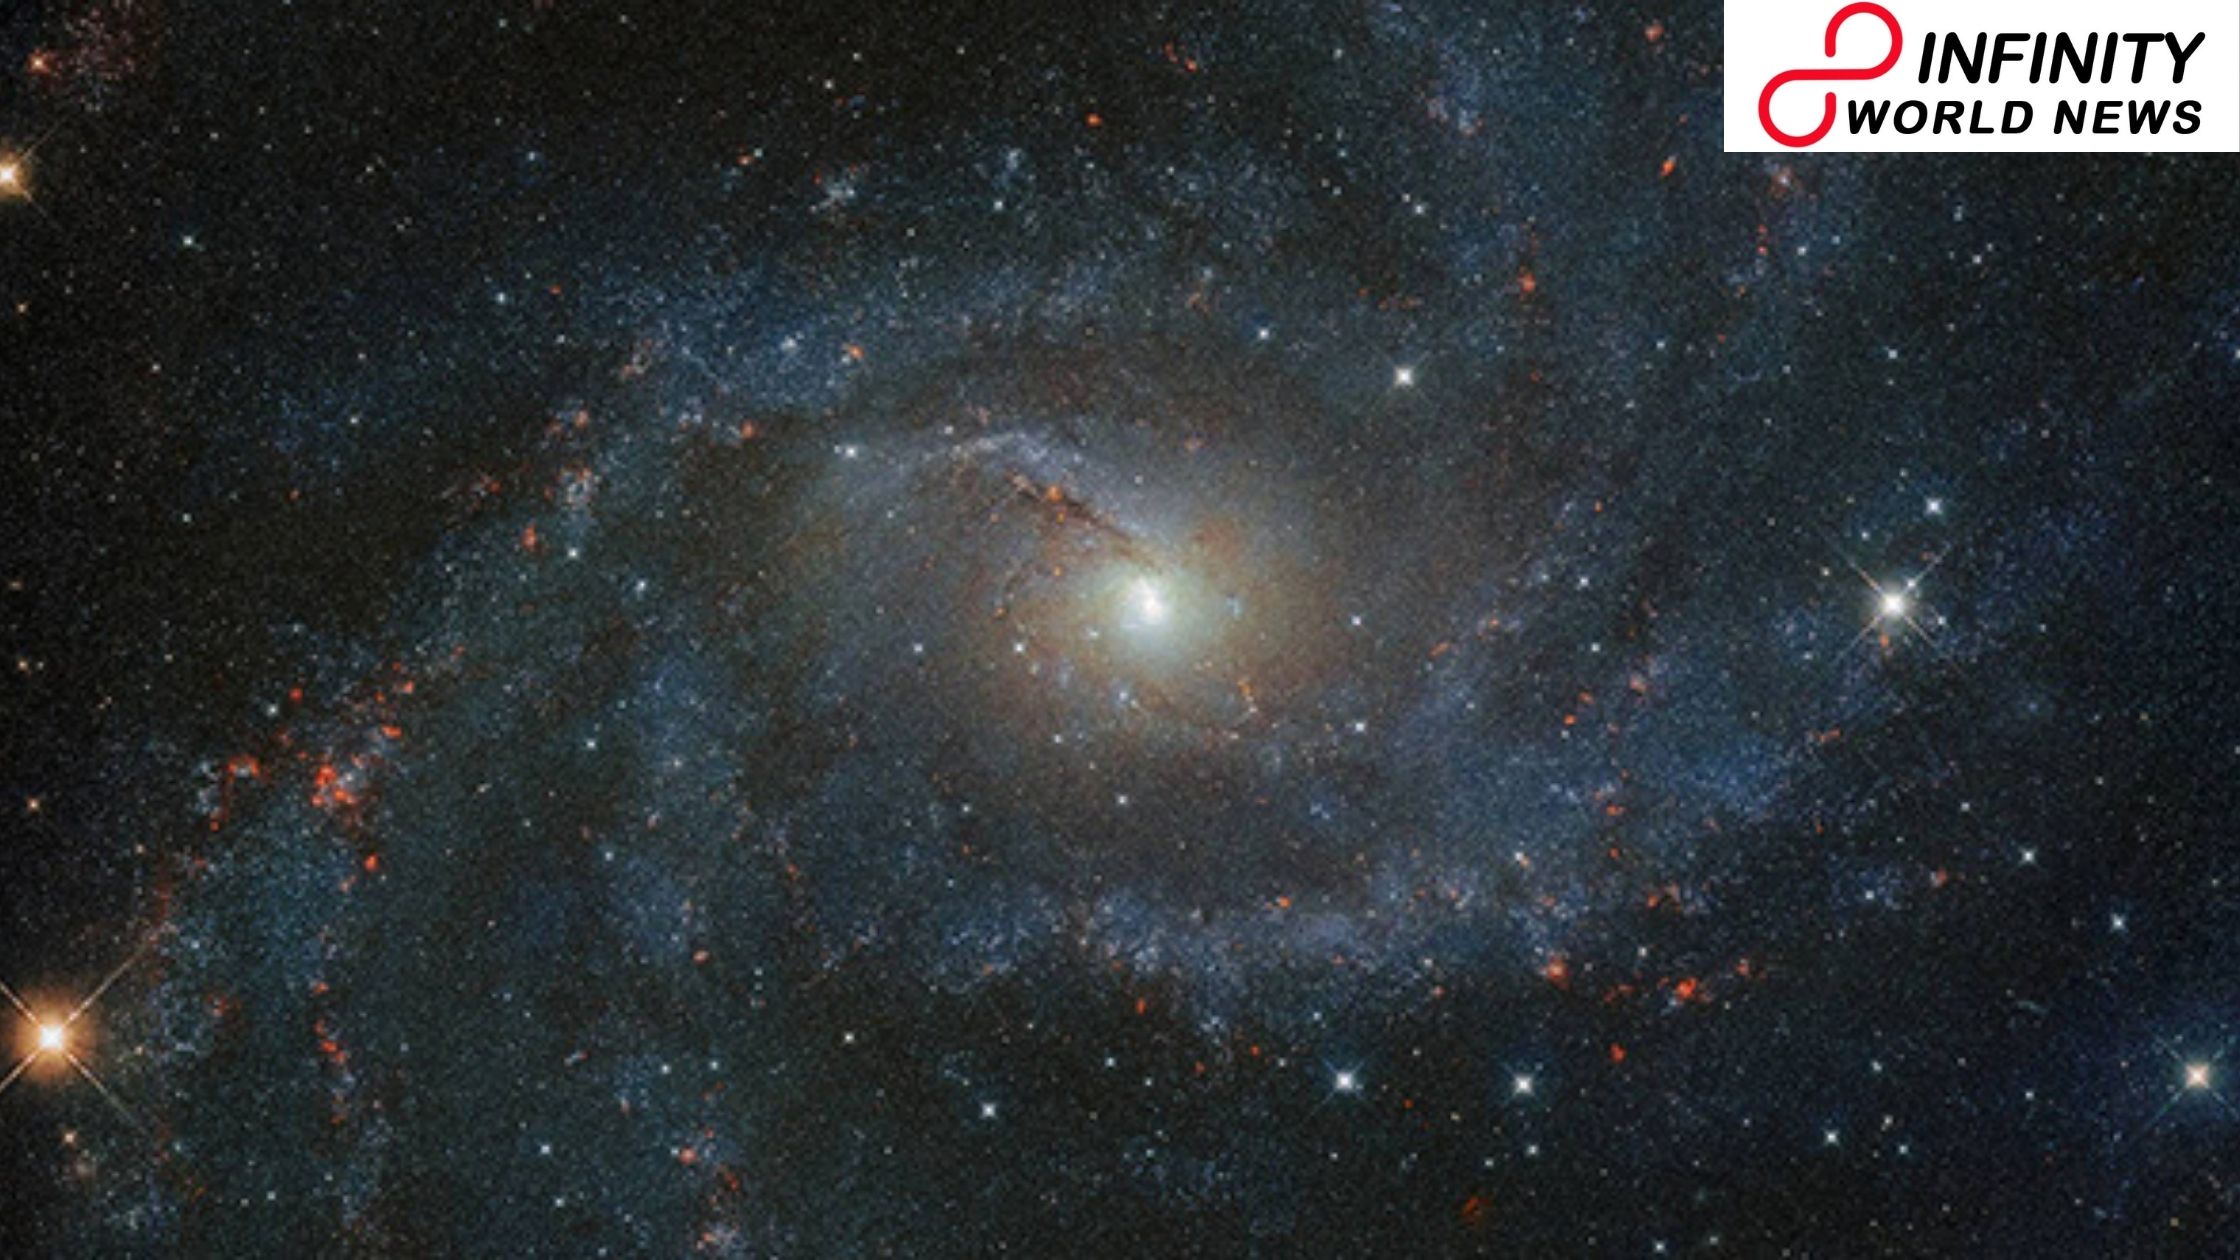 NASA Shares Spellbinding Pictures of 'Firecrackers Galaxy' That Saw 10 Supernovae into Last 100 Years